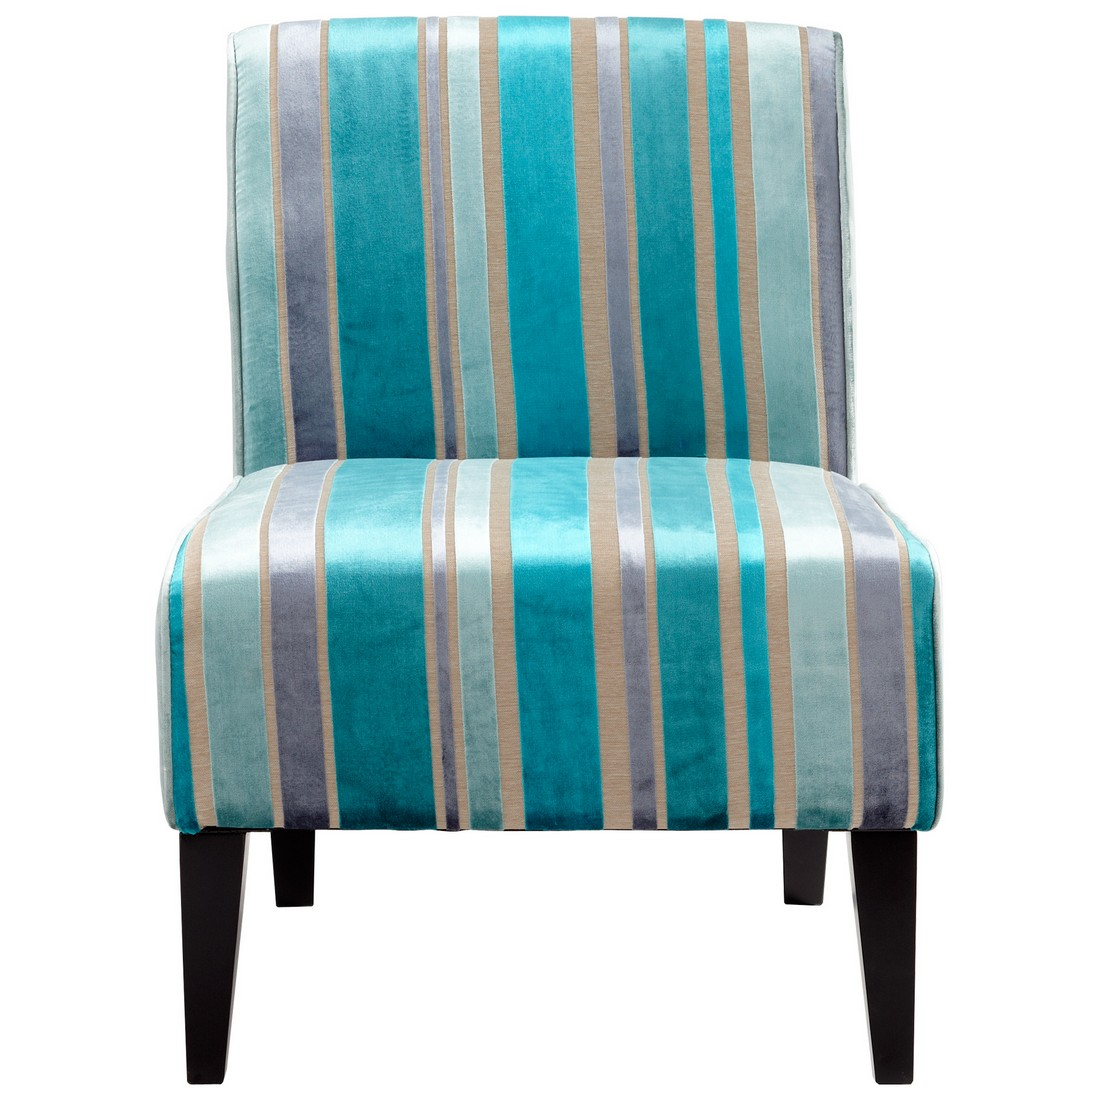 Cyan Design Ms. Stripy 31 Chair in Turquoise Blue